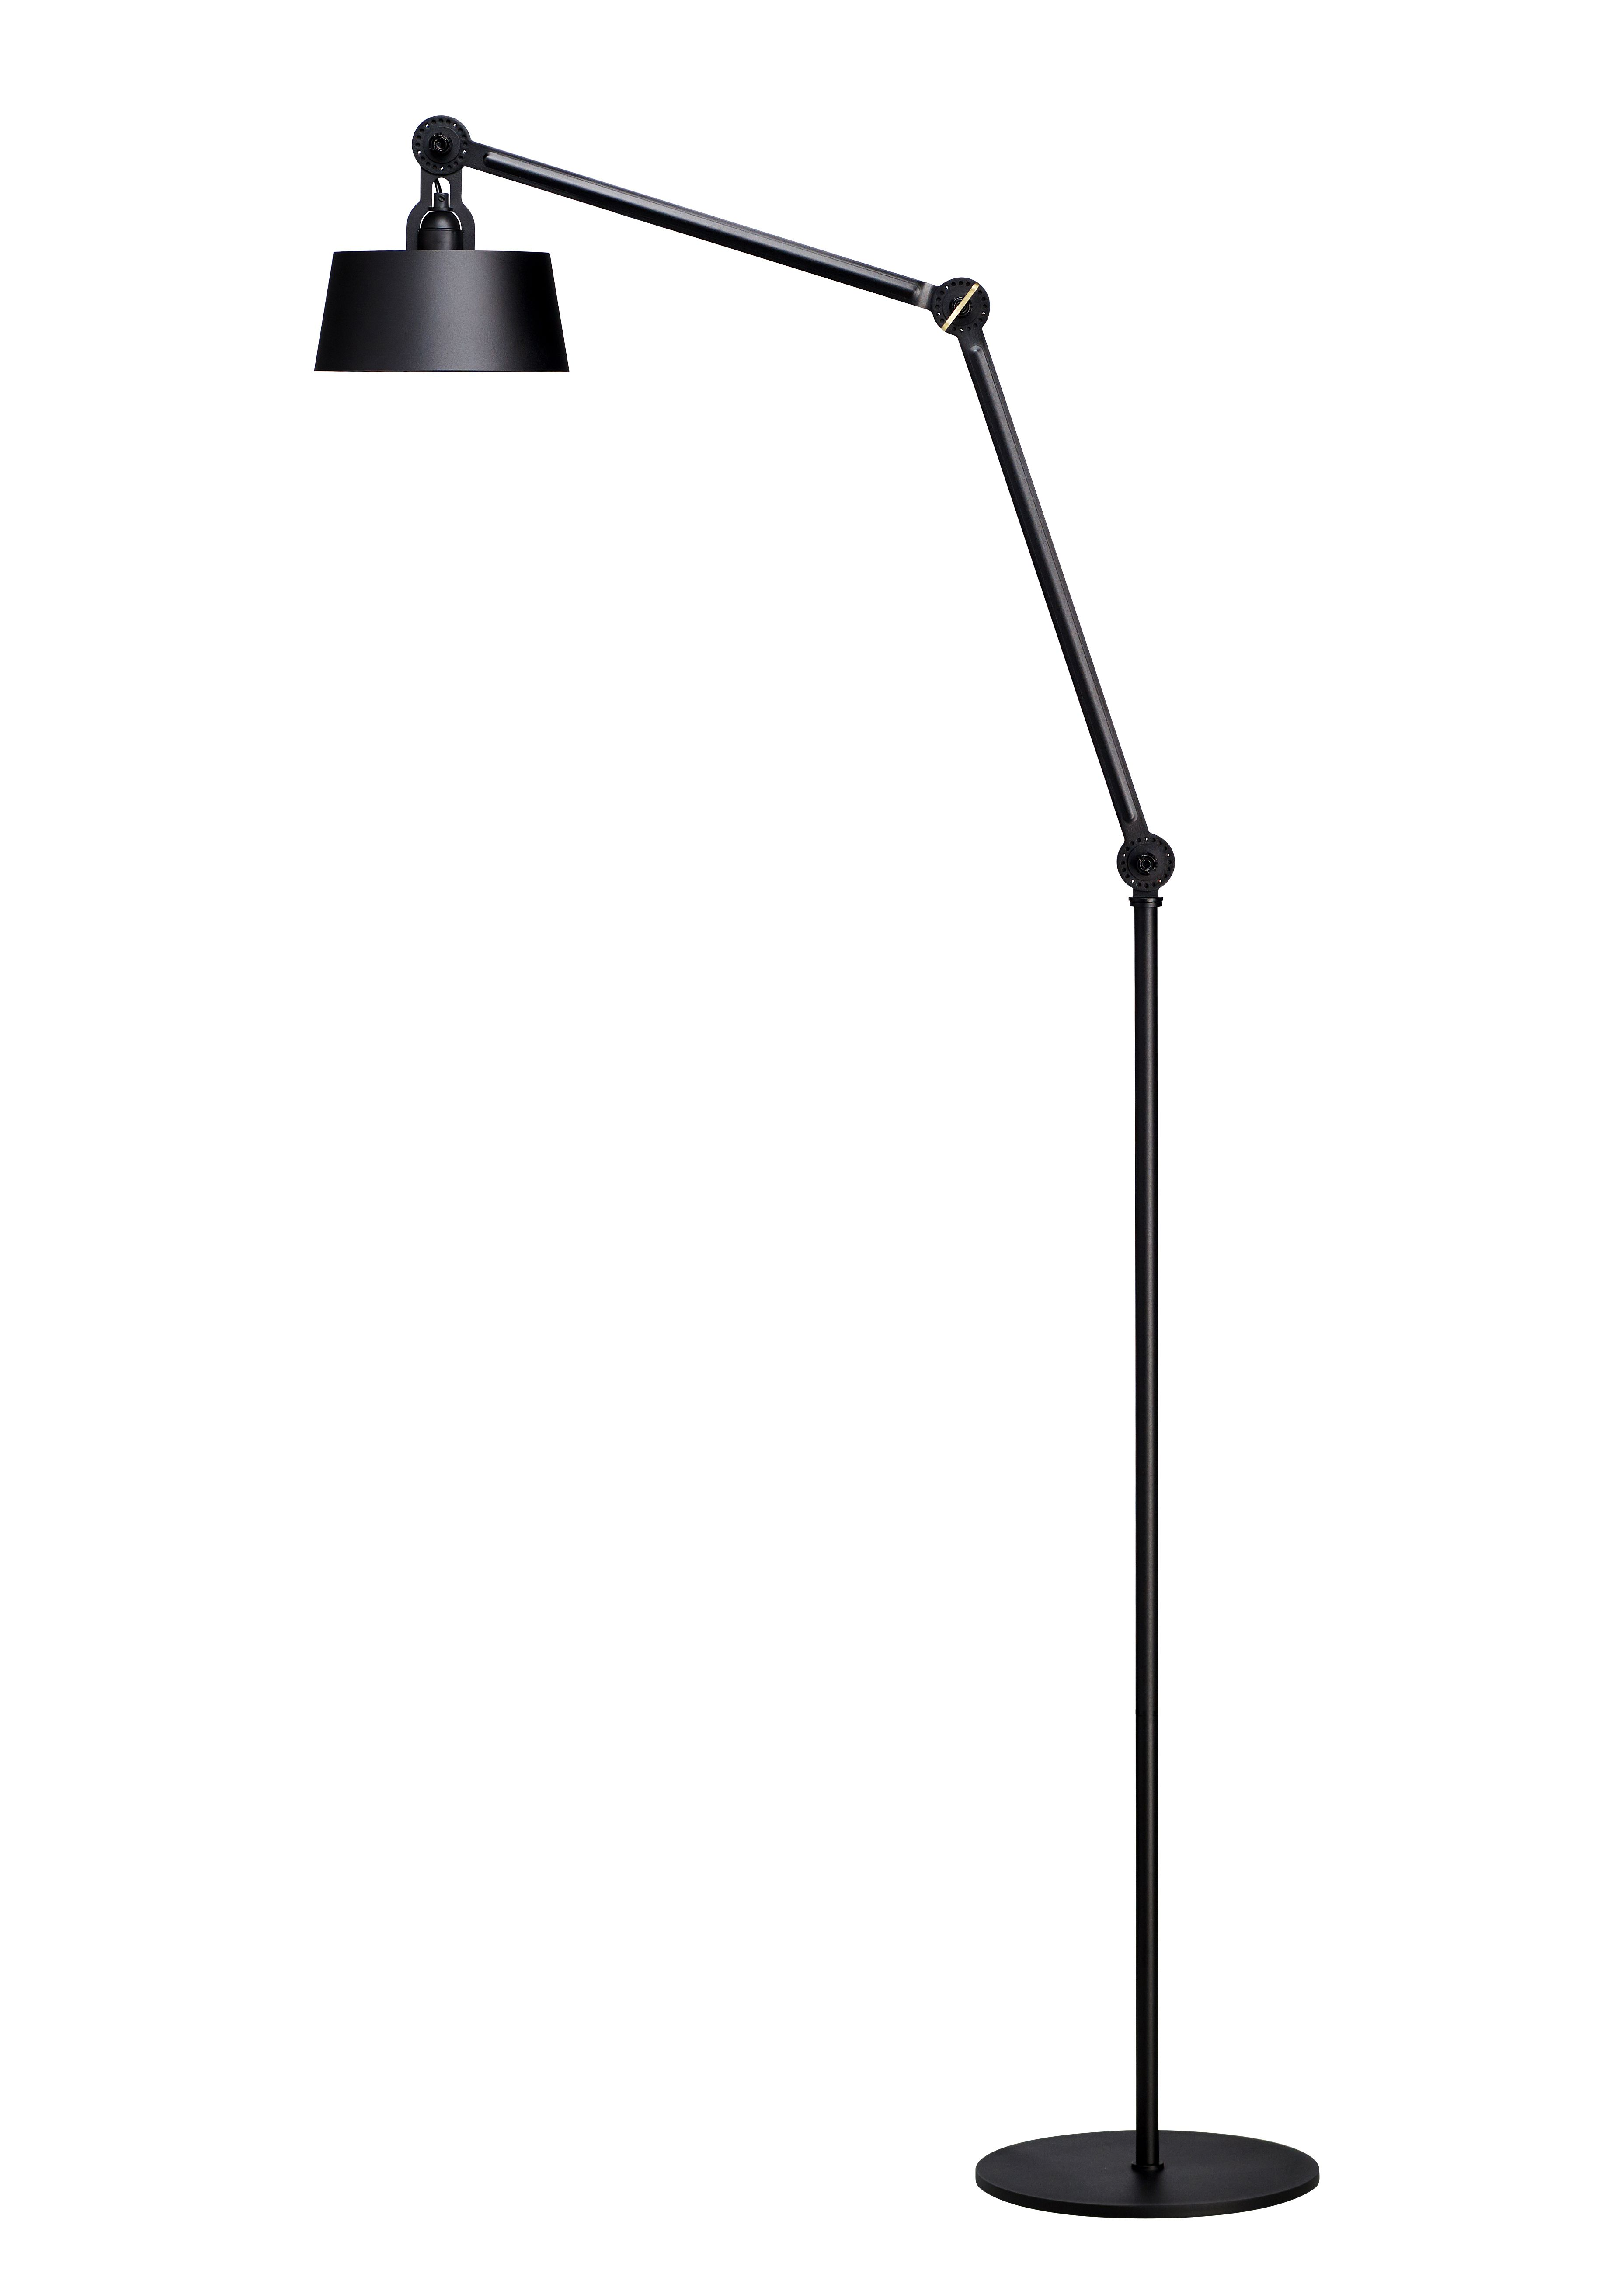 Tonone Bolt Floor Long Lamp 2arm Smokey Black Upper Fit Each Lamp Comes With A Special Wingnut Shaped Tool This Wingnut Can Be Used To Ad Lampen Interieur